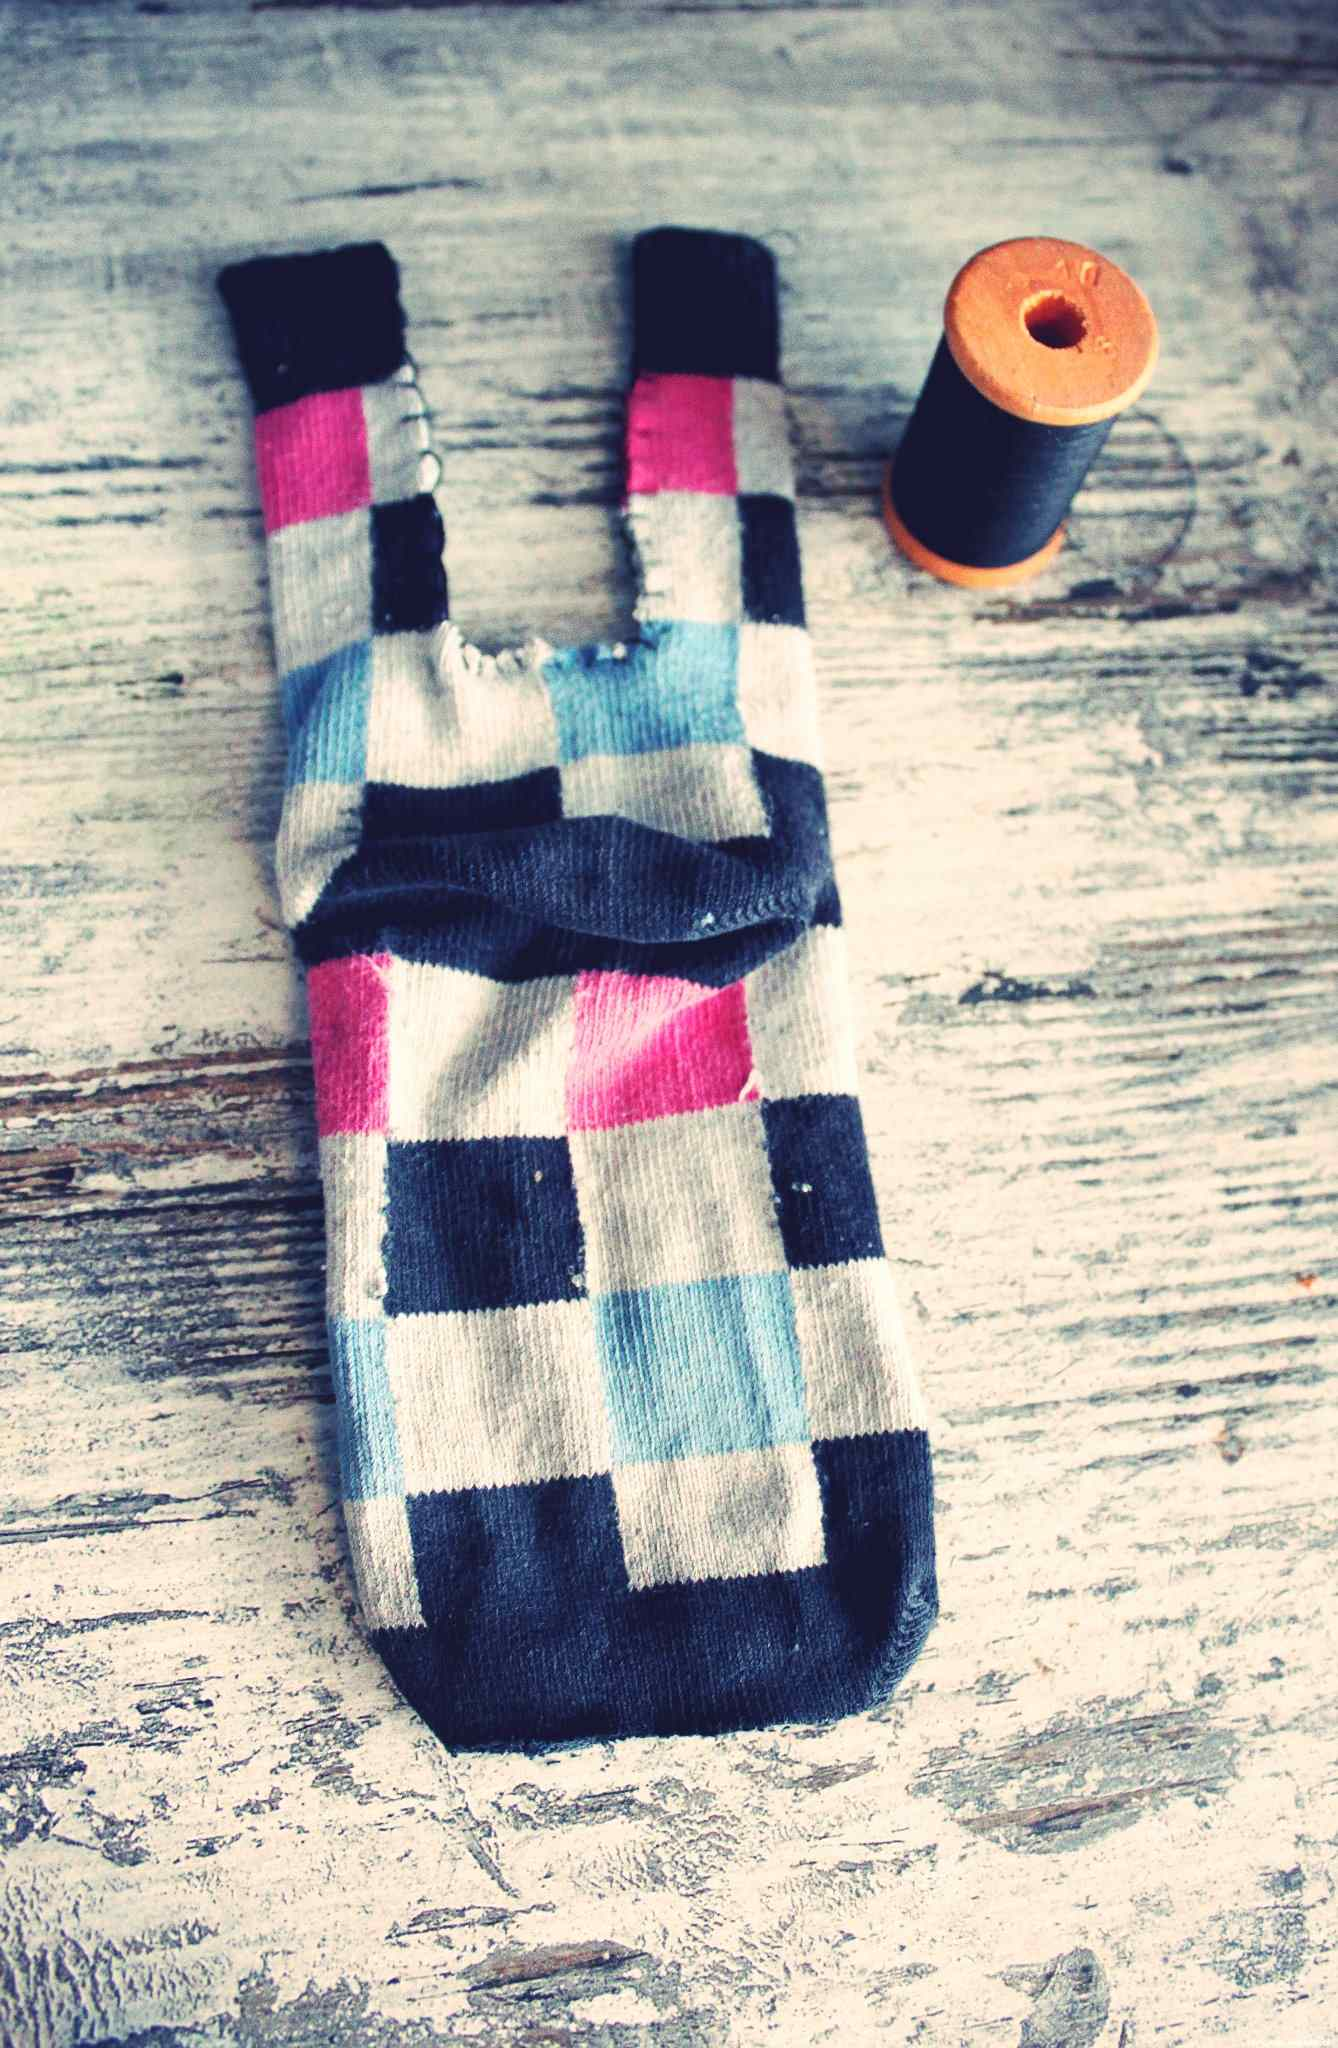 bricolage du mercredi diy je recycle les chaussettes solo en doudou et dieu cr a. Black Bedroom Furniture Sets. Home Design Ideas